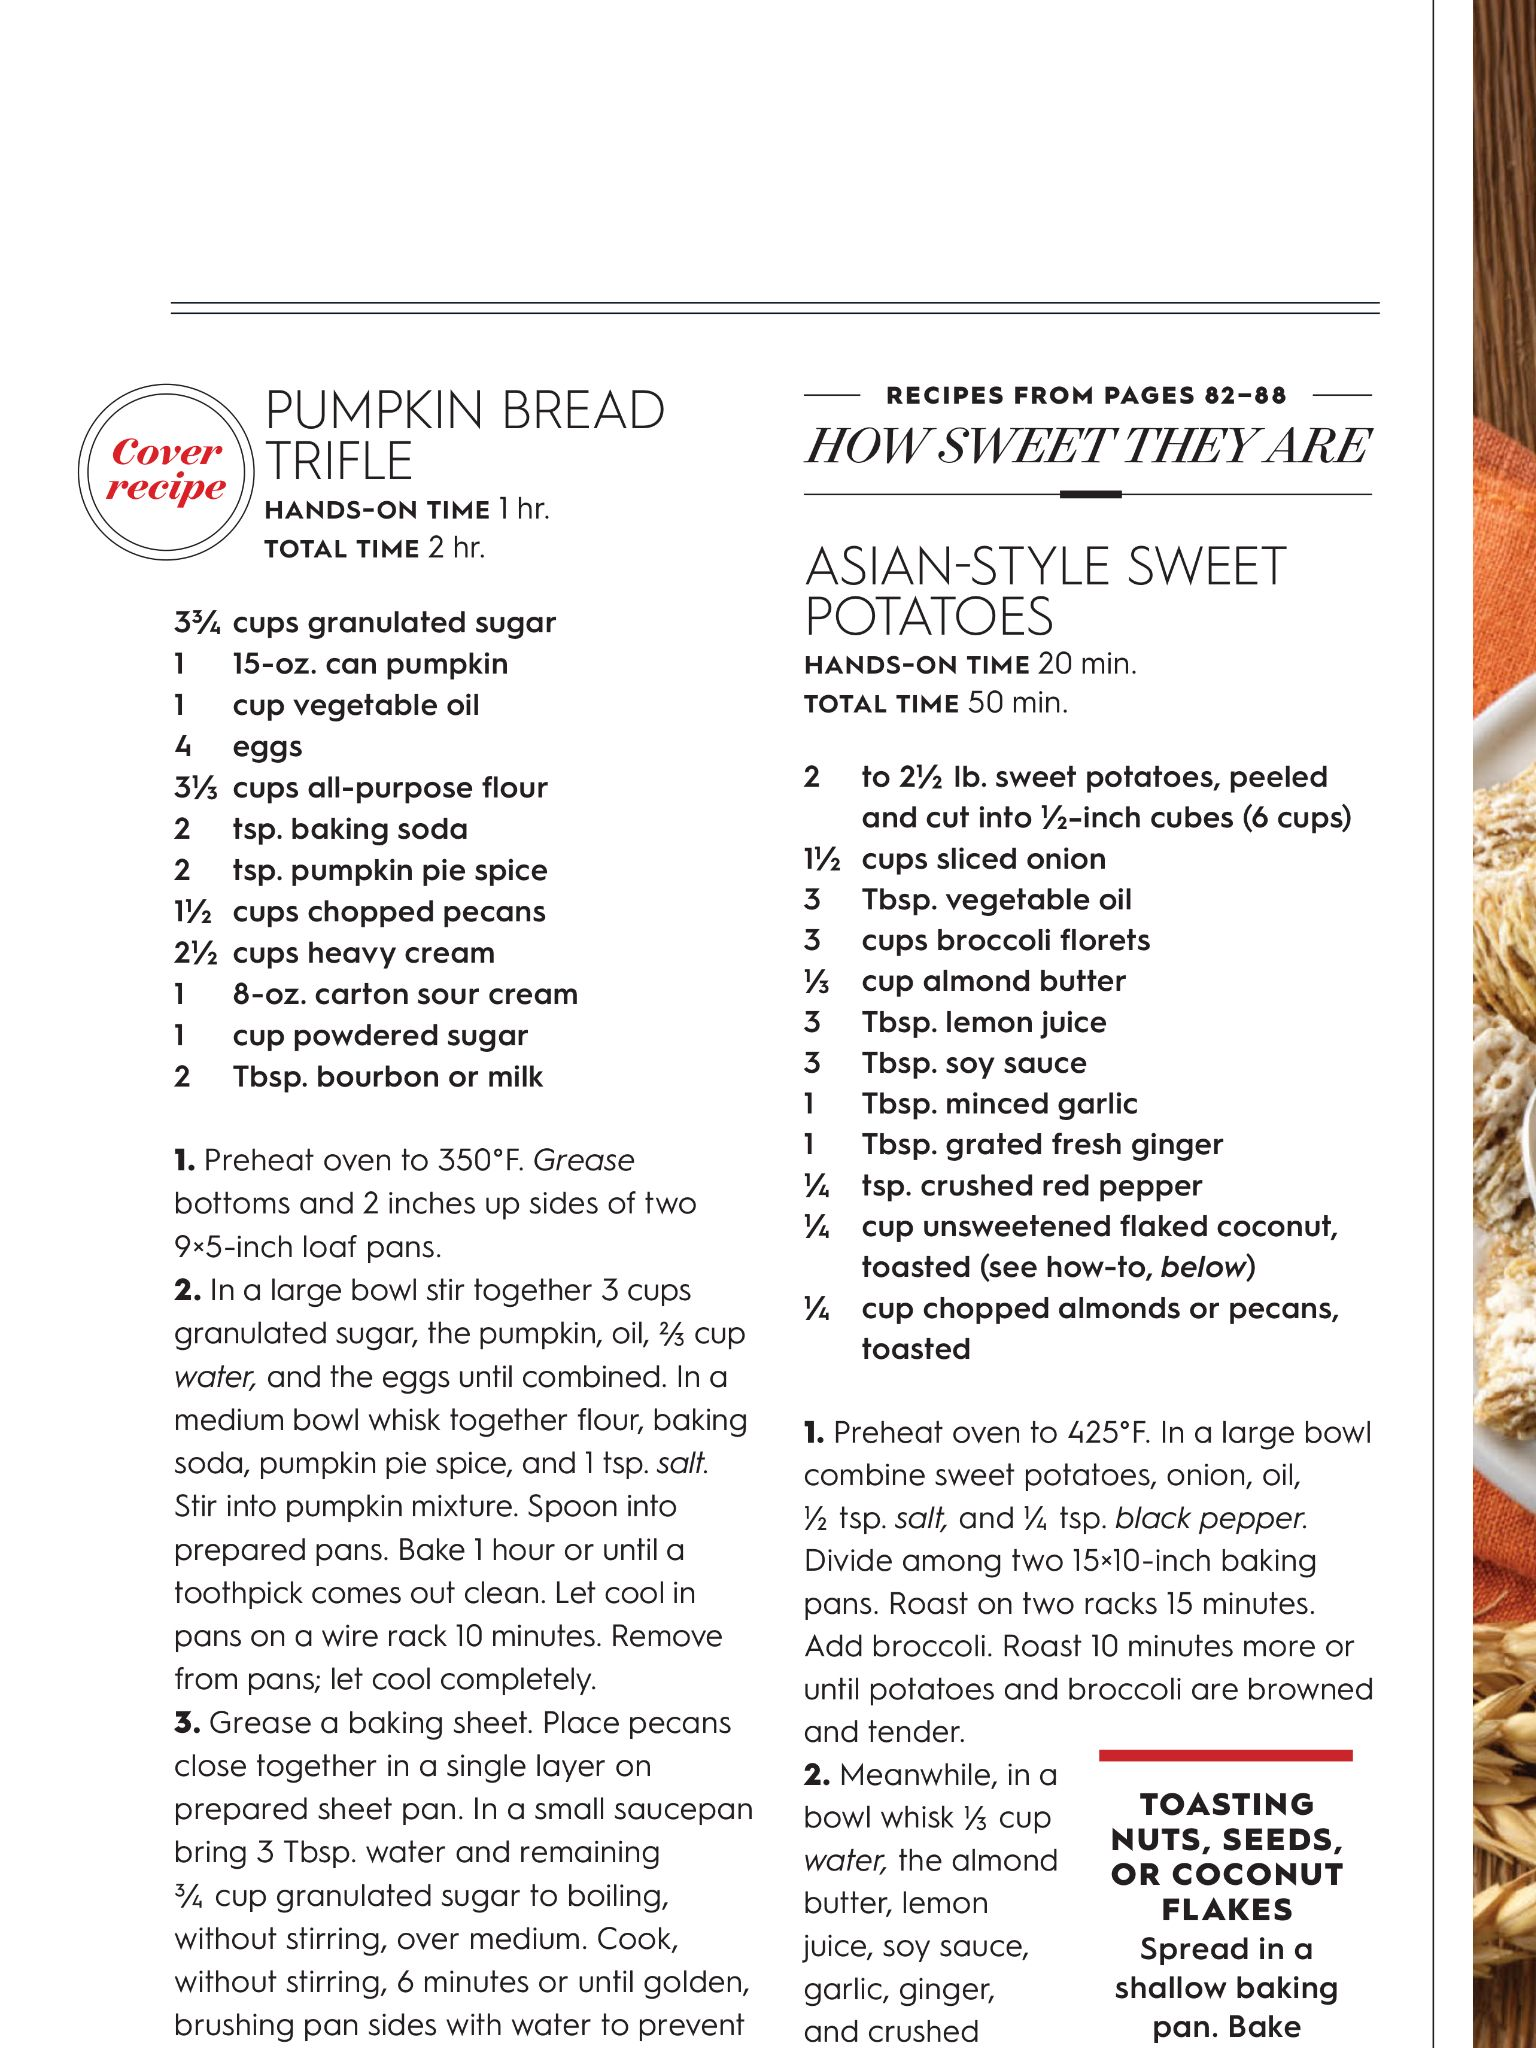 c6dac01de08640d42c597d3e6b190408 - Pumpkin Bread Recipe Better Homes And Gardens